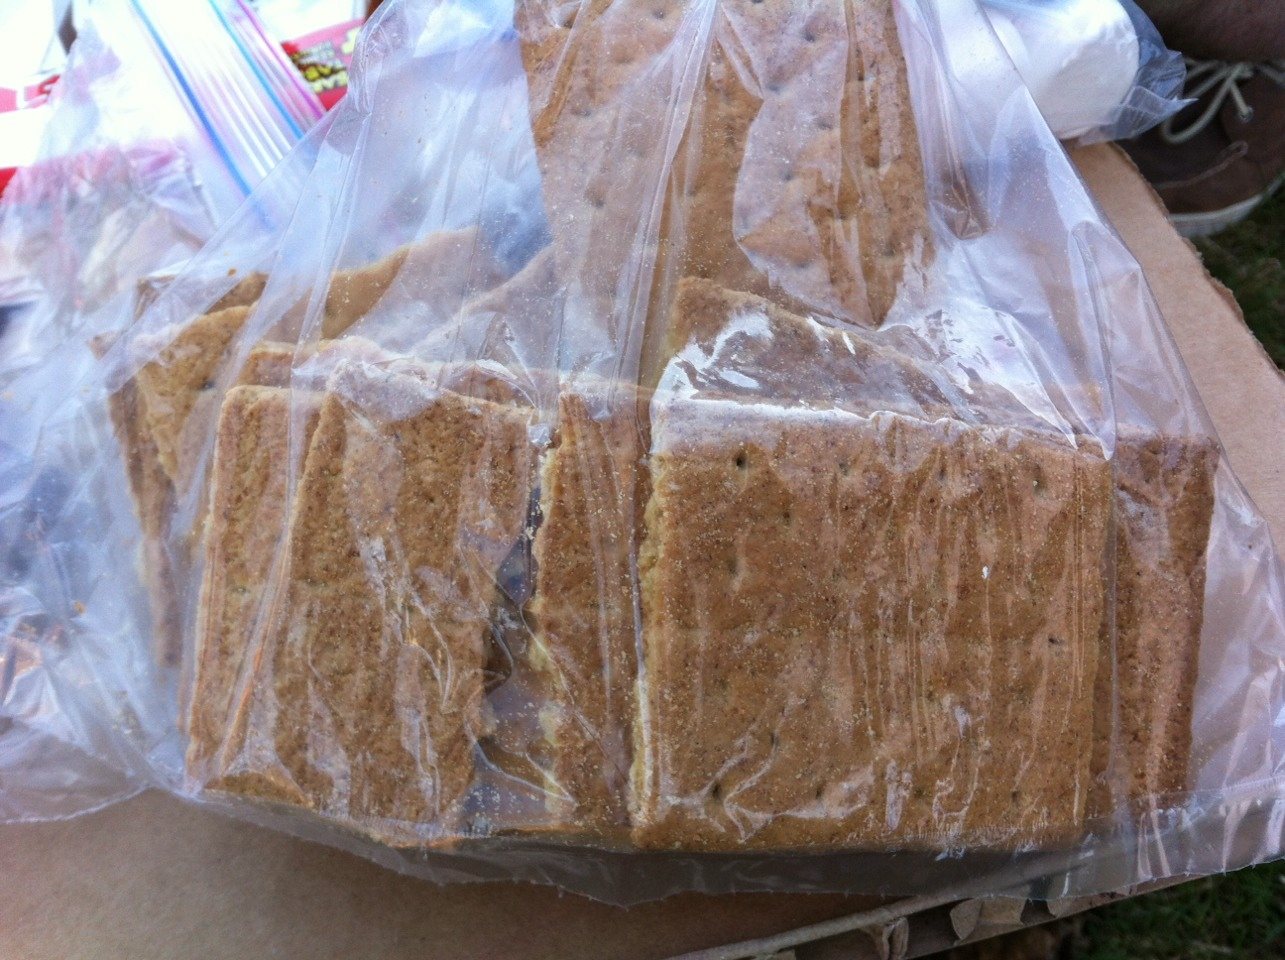 Graham Crackers! I went to bulk barn and purchased a whole bag of them, so good!